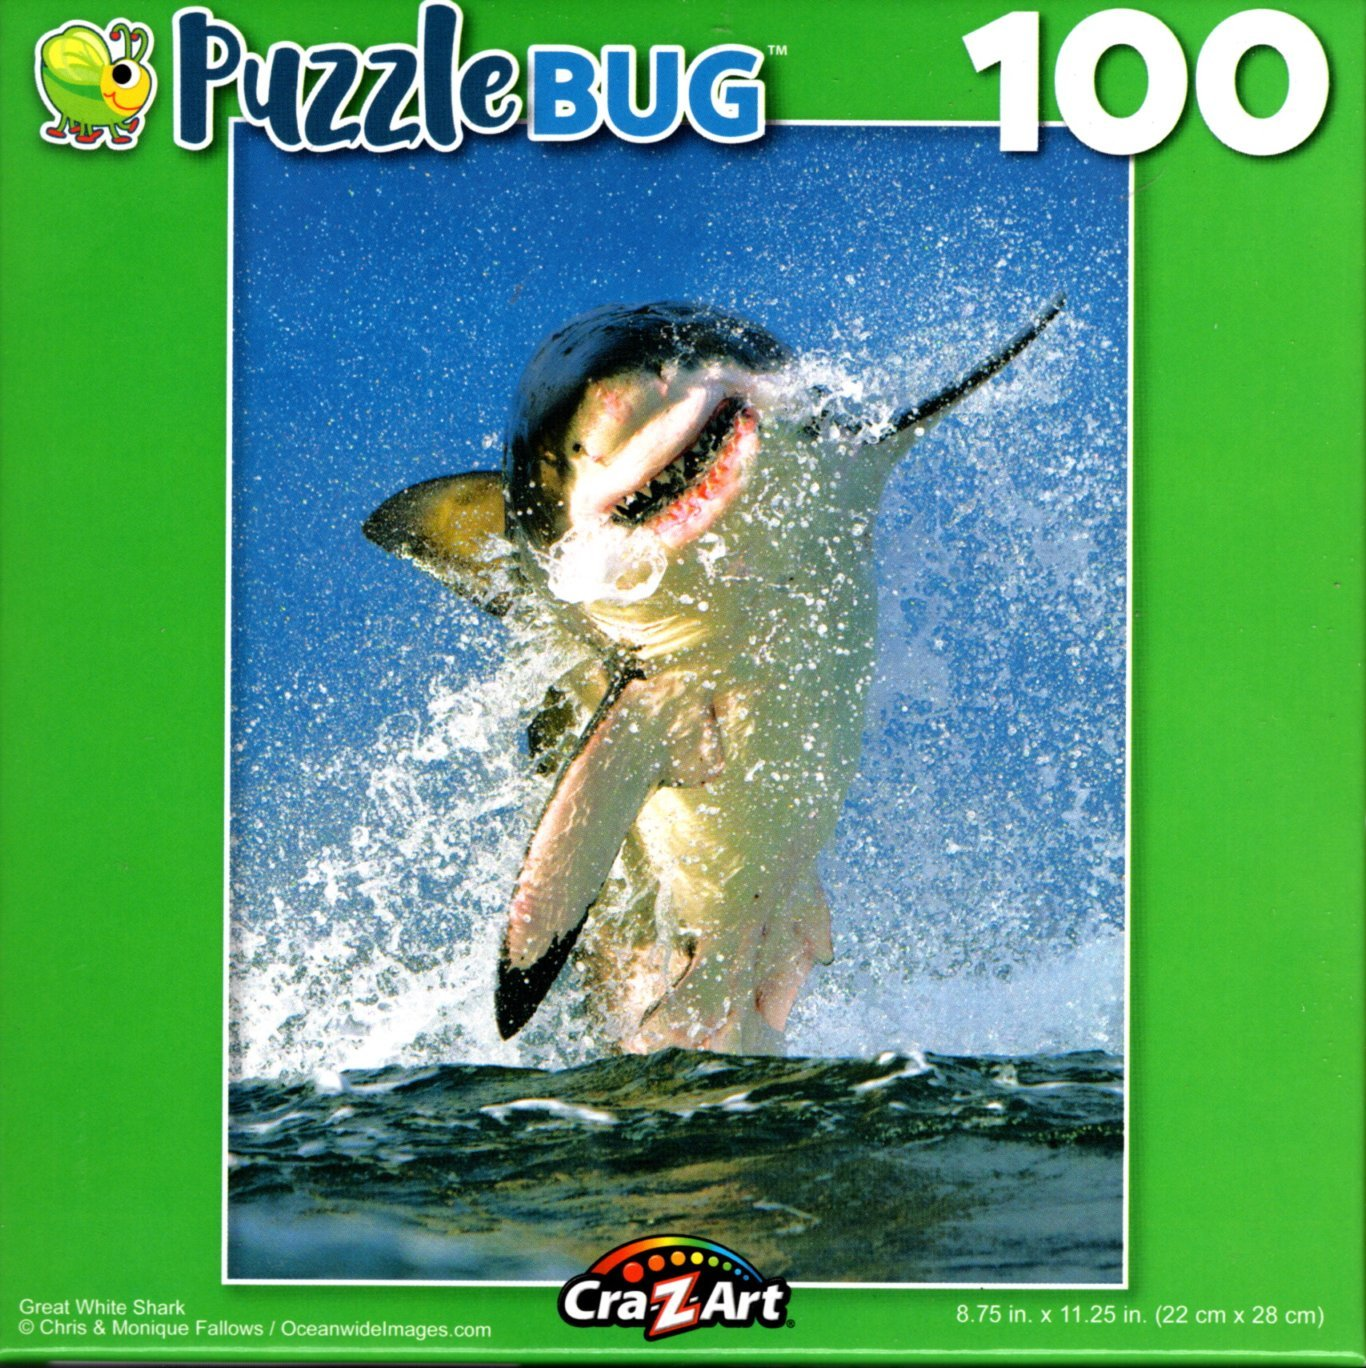 Puzzlebug Great White Shark 100 Piece Jigsaw Puzzle